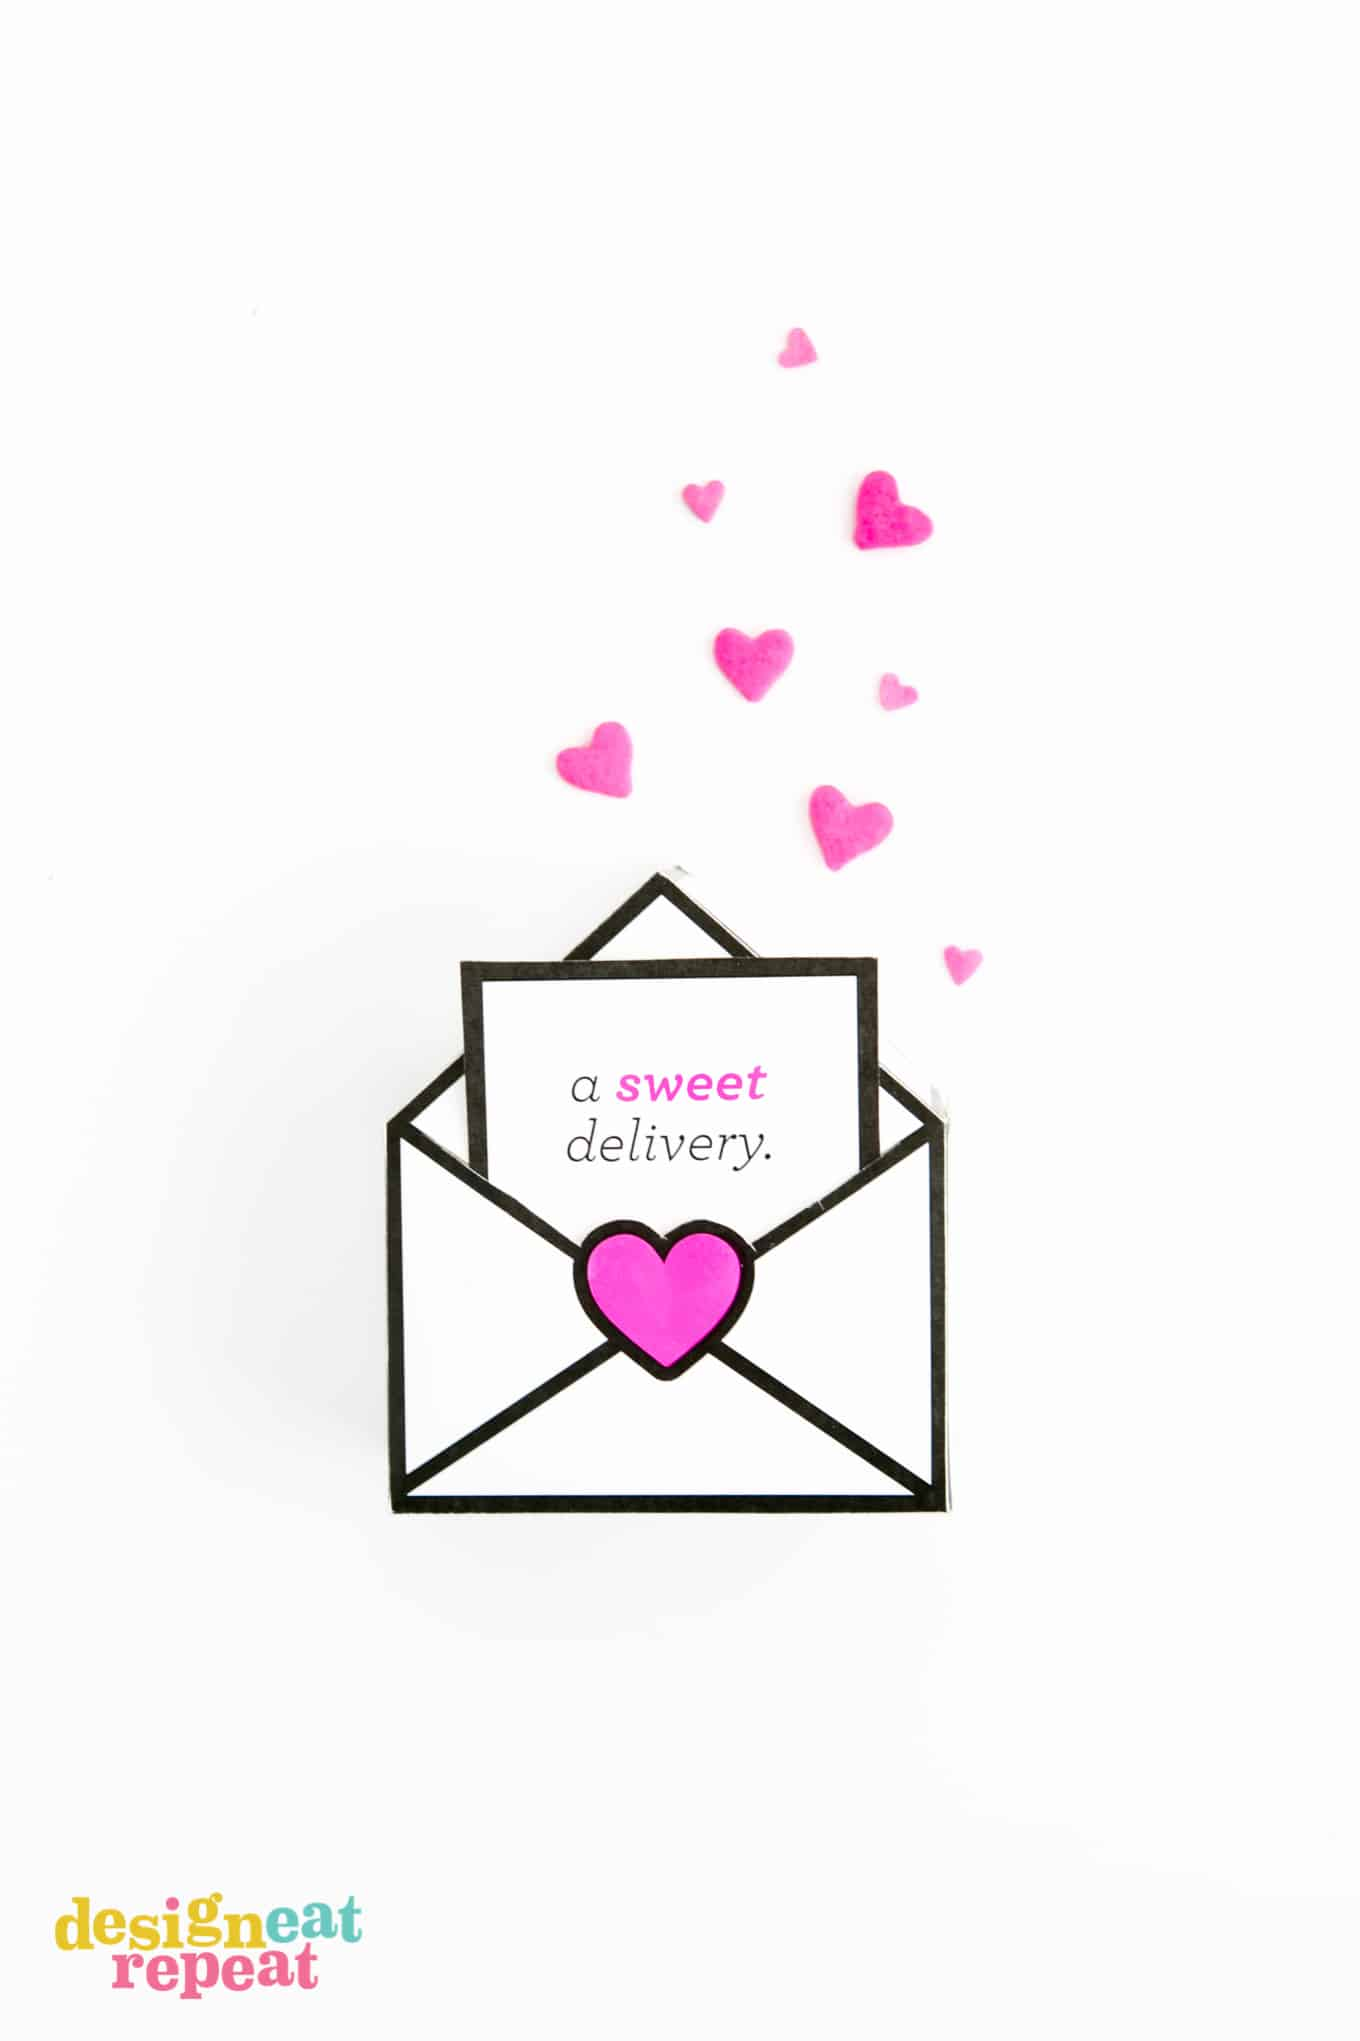 Printable Valentines gift boxes that are designed like envelopes with a sweet delivery notecard filled with Starburst.